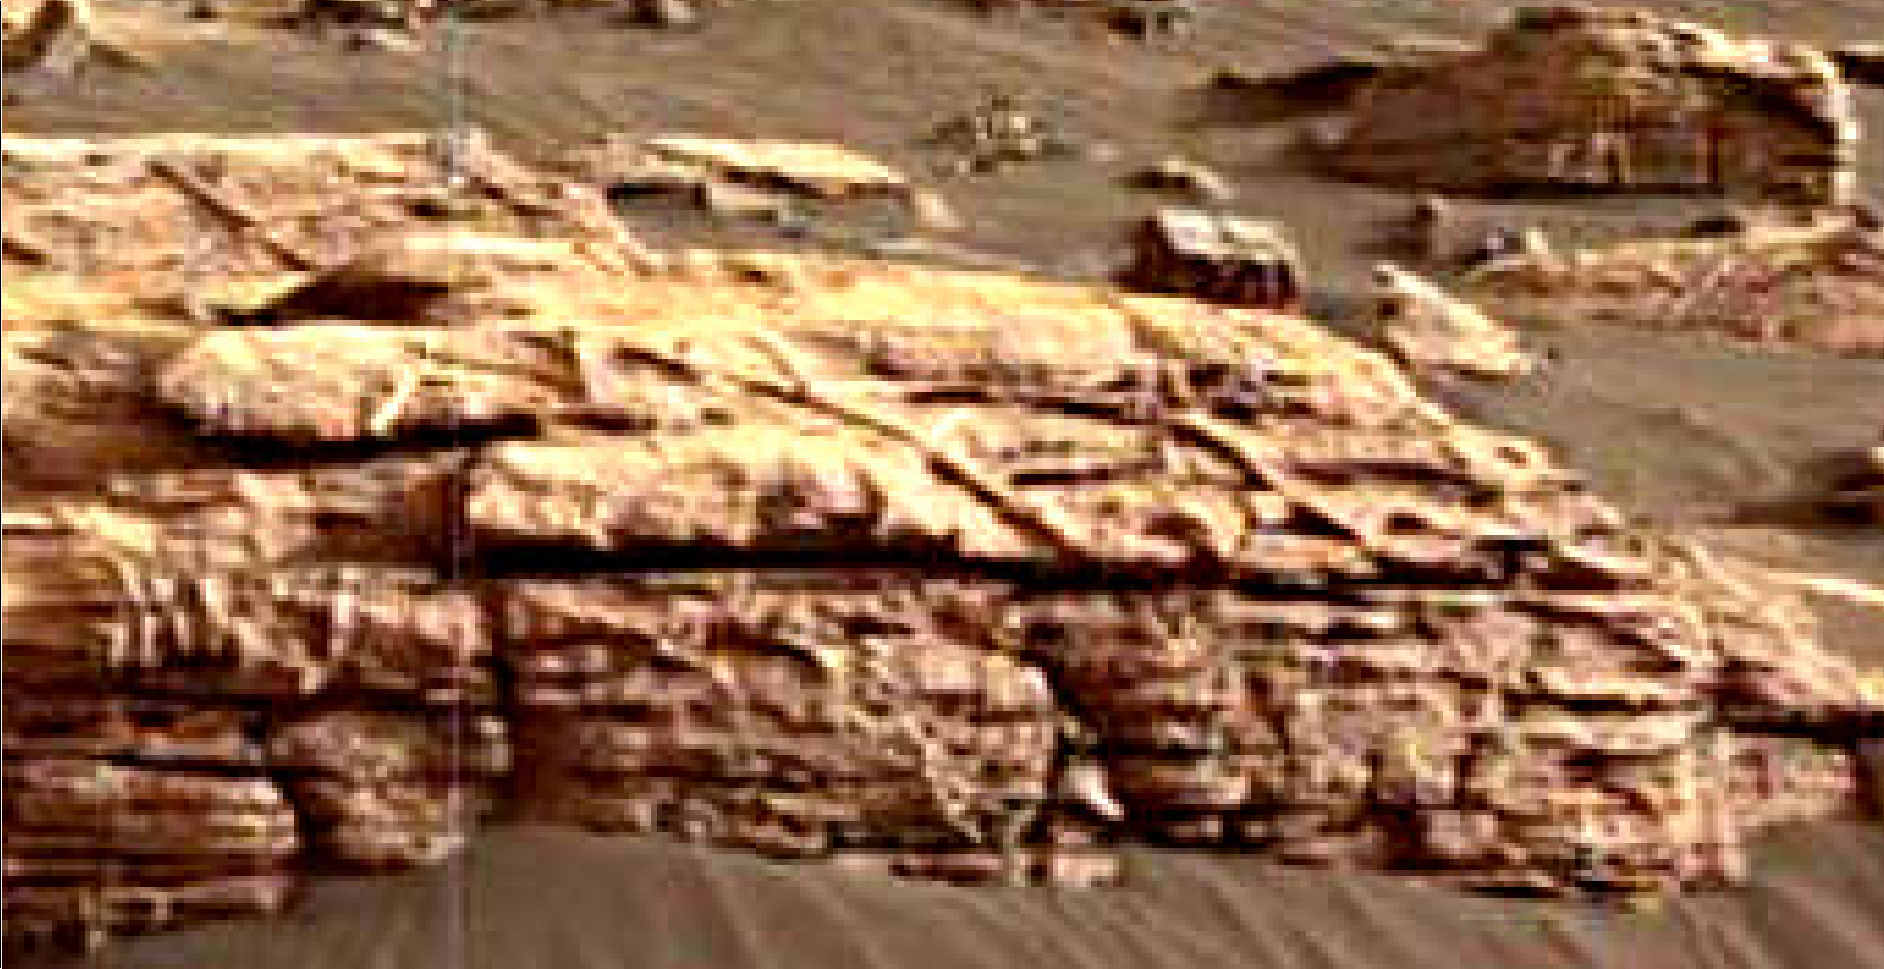 mars-sol-1512-anomaly-artifacts-8-was-life-on-mars